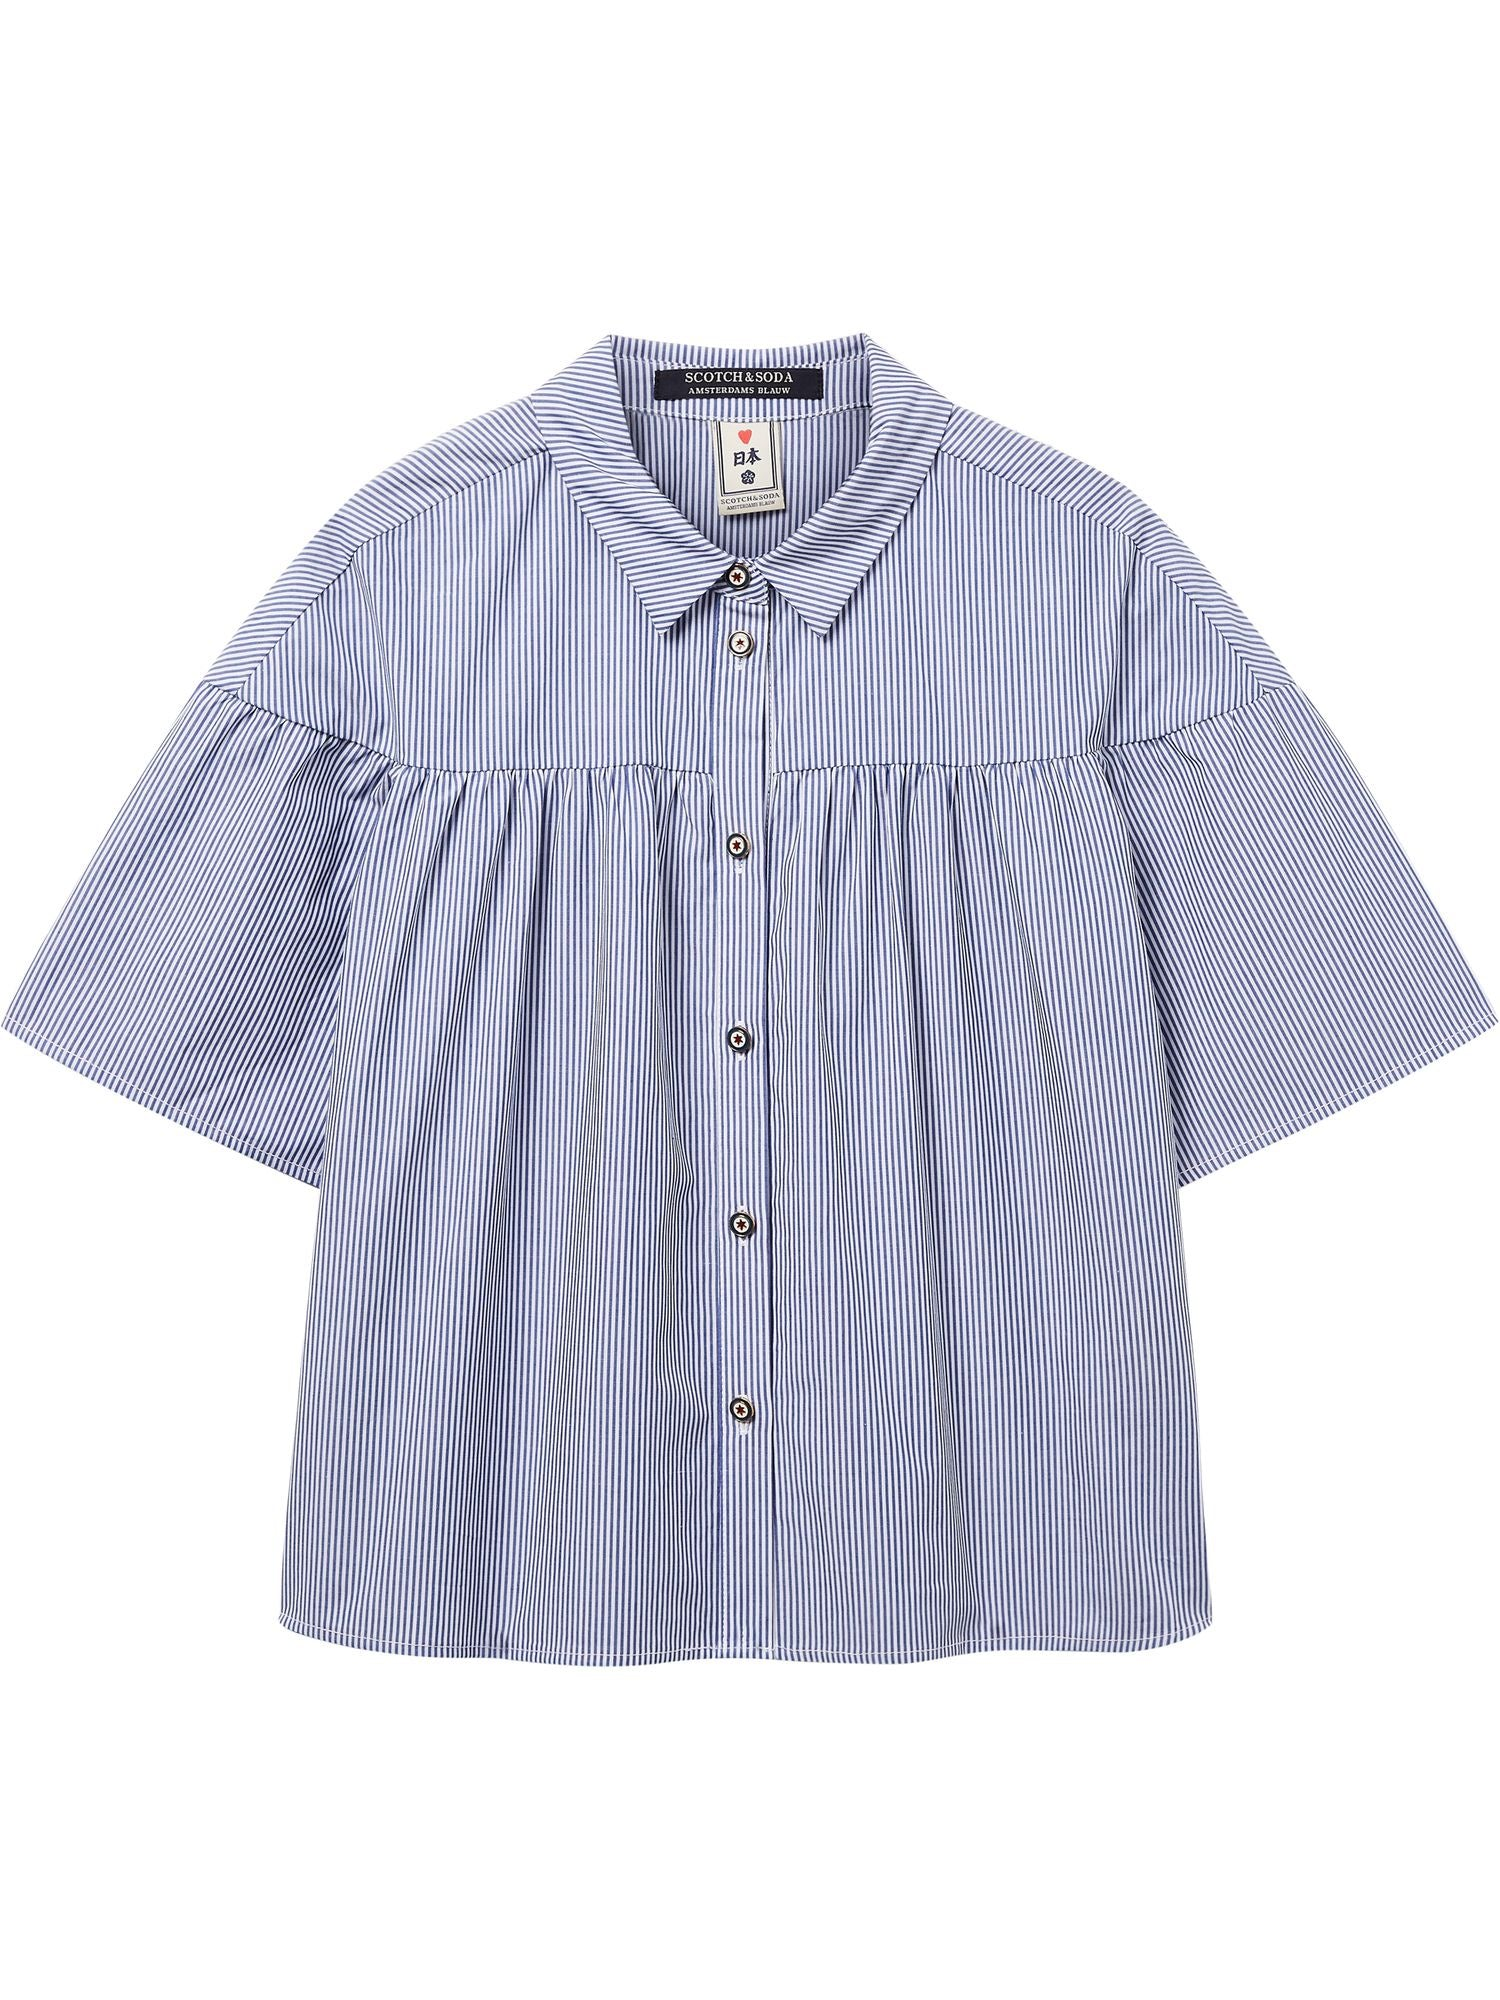 Cotton Shirt with Wide Sleeves